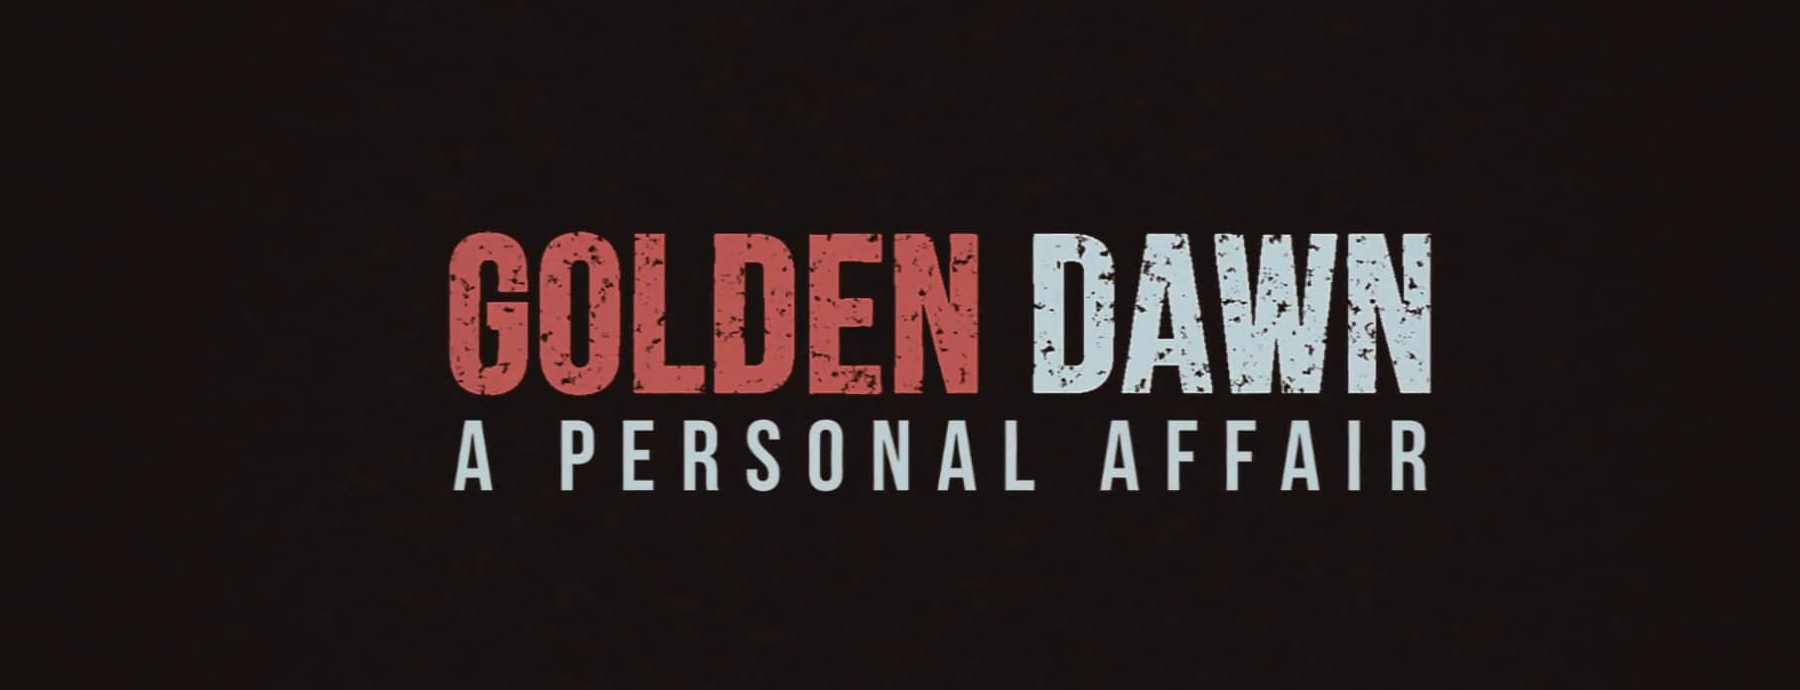 15.04.16 – Golden Down: a personal affair – Filmvorführung & Diskussion